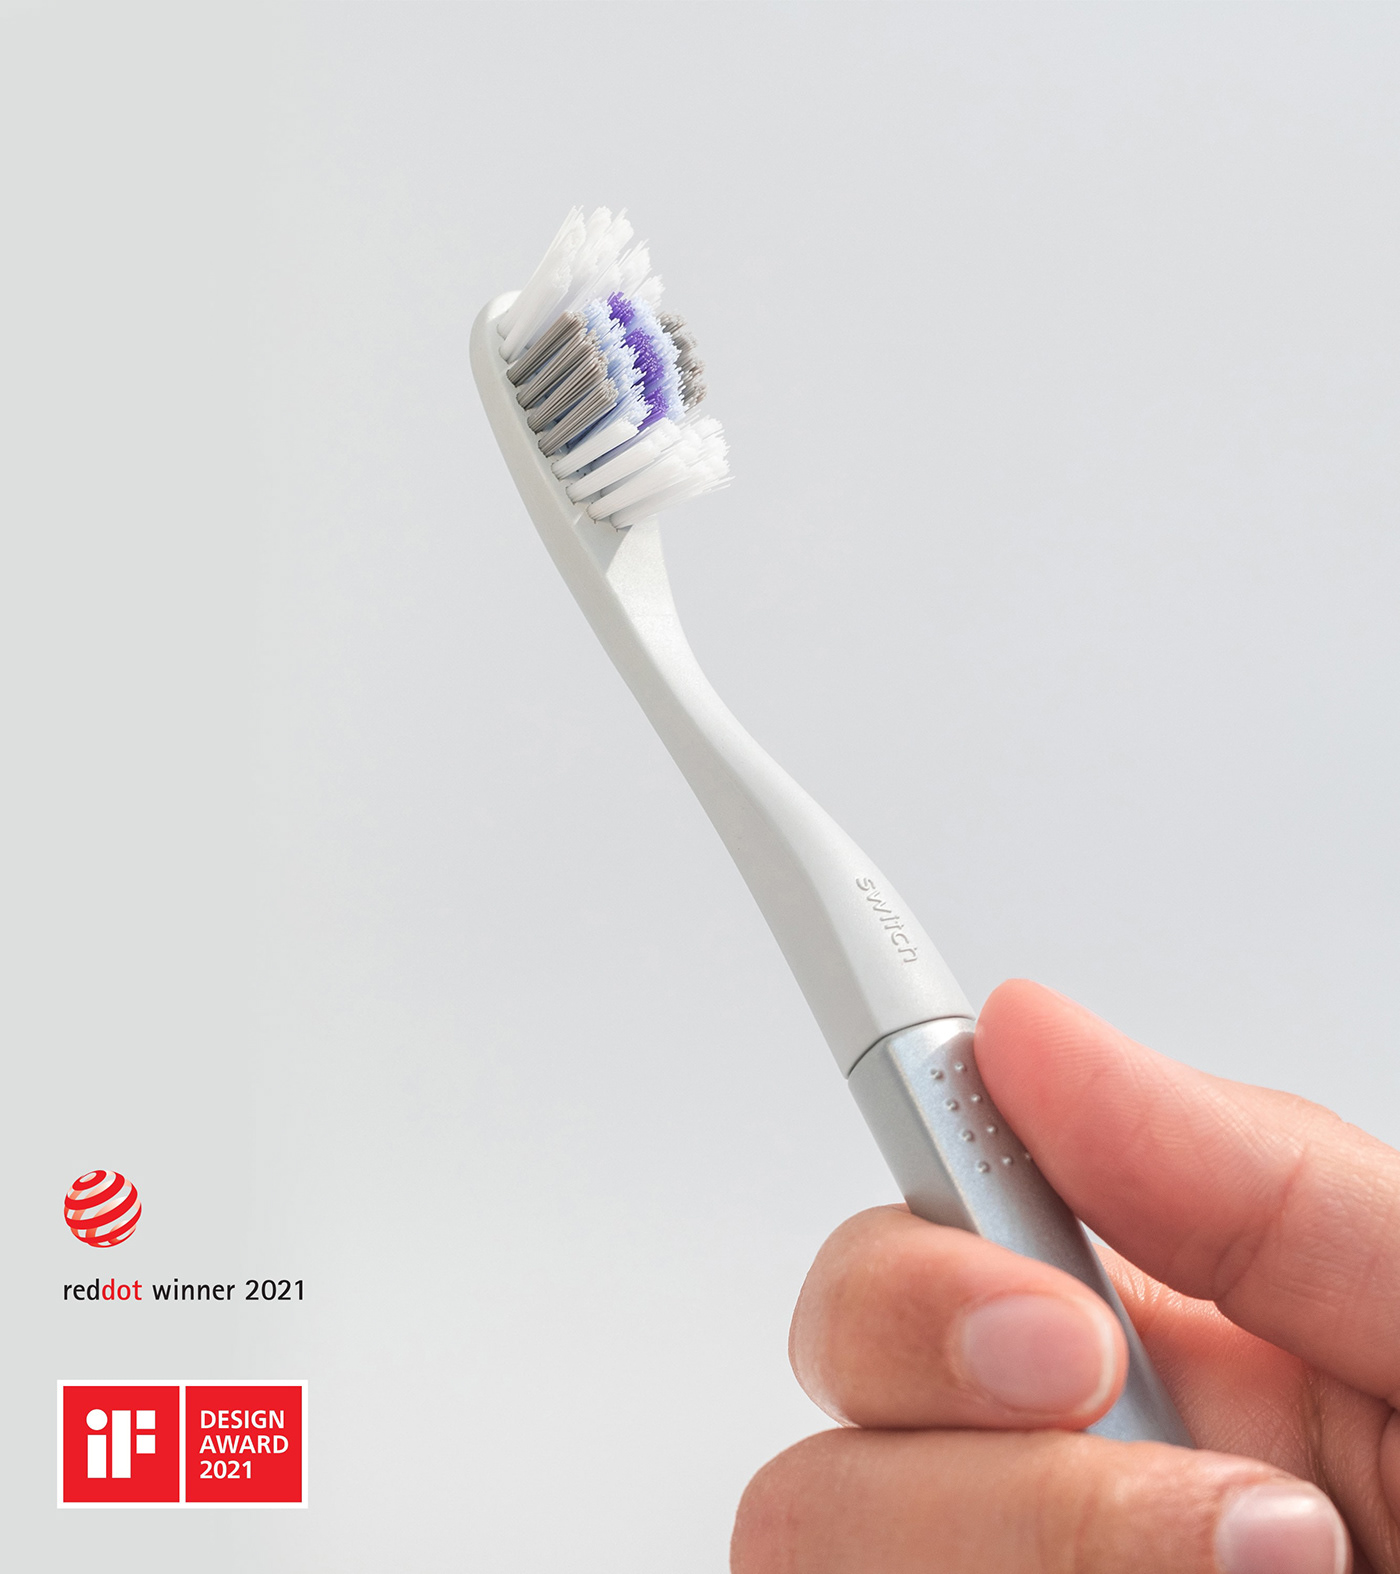 crux product design industrial design  oral care oral health product design  Sustainability toothbrush